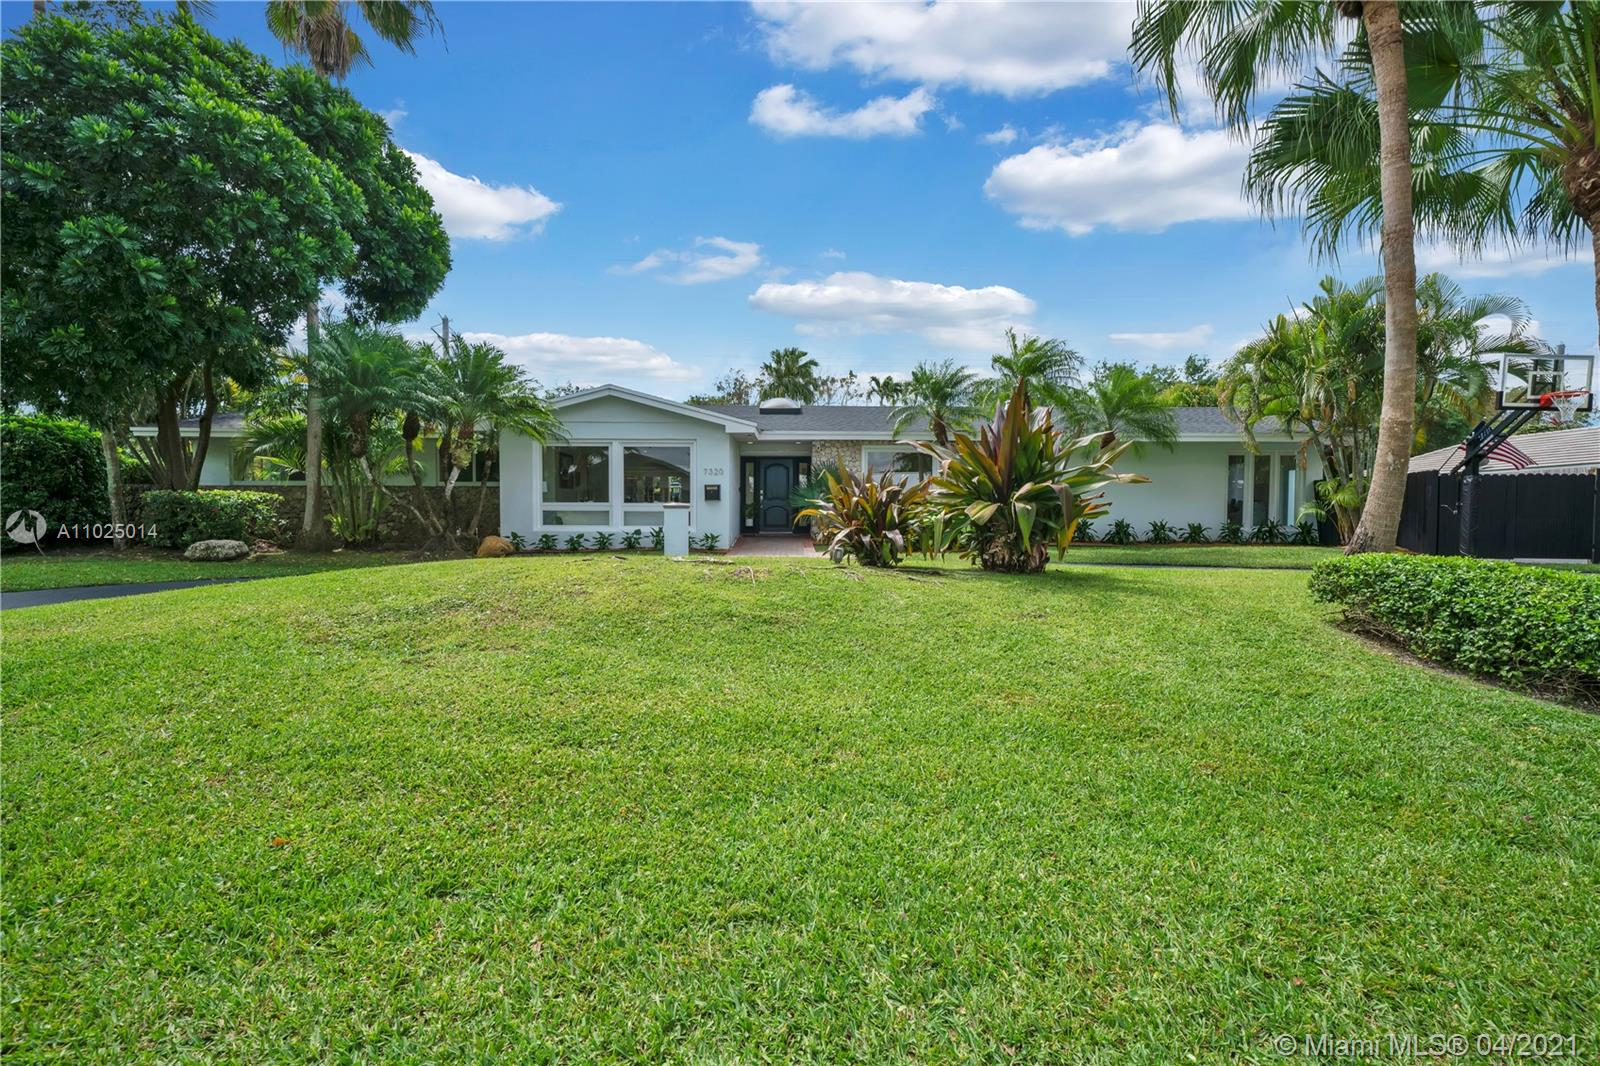 North Palmetto Bay PERFECTION! Fully remodeled in 2018 this spacious 5/3 home is 4,015 liv sqft as per appraisal. Gourmet kitchen w/ eat-in bay window seating overlooks spectacular pool patio. Porcelain tile throughout living areas & oversized bedrooms. Magnificent owners suite features volume ceilings,floor-to-ceiling windows overlooking the tropical backyard, along with w/custom bath & rock star built walk-in closet. An abundance of natural light flowing through skylights & full impact windows/doors open to a spacious pool/patio overlooking lush landscaping/private backyard perfect for outdoor enjoyment. New water supply, drain lines,& 2017 roof. Hop on bordering paths steps away from Old Cutler Rd, Coral Reef Park, Deering Estate,& top-rated public/private schools. Come fall IN LOVE!